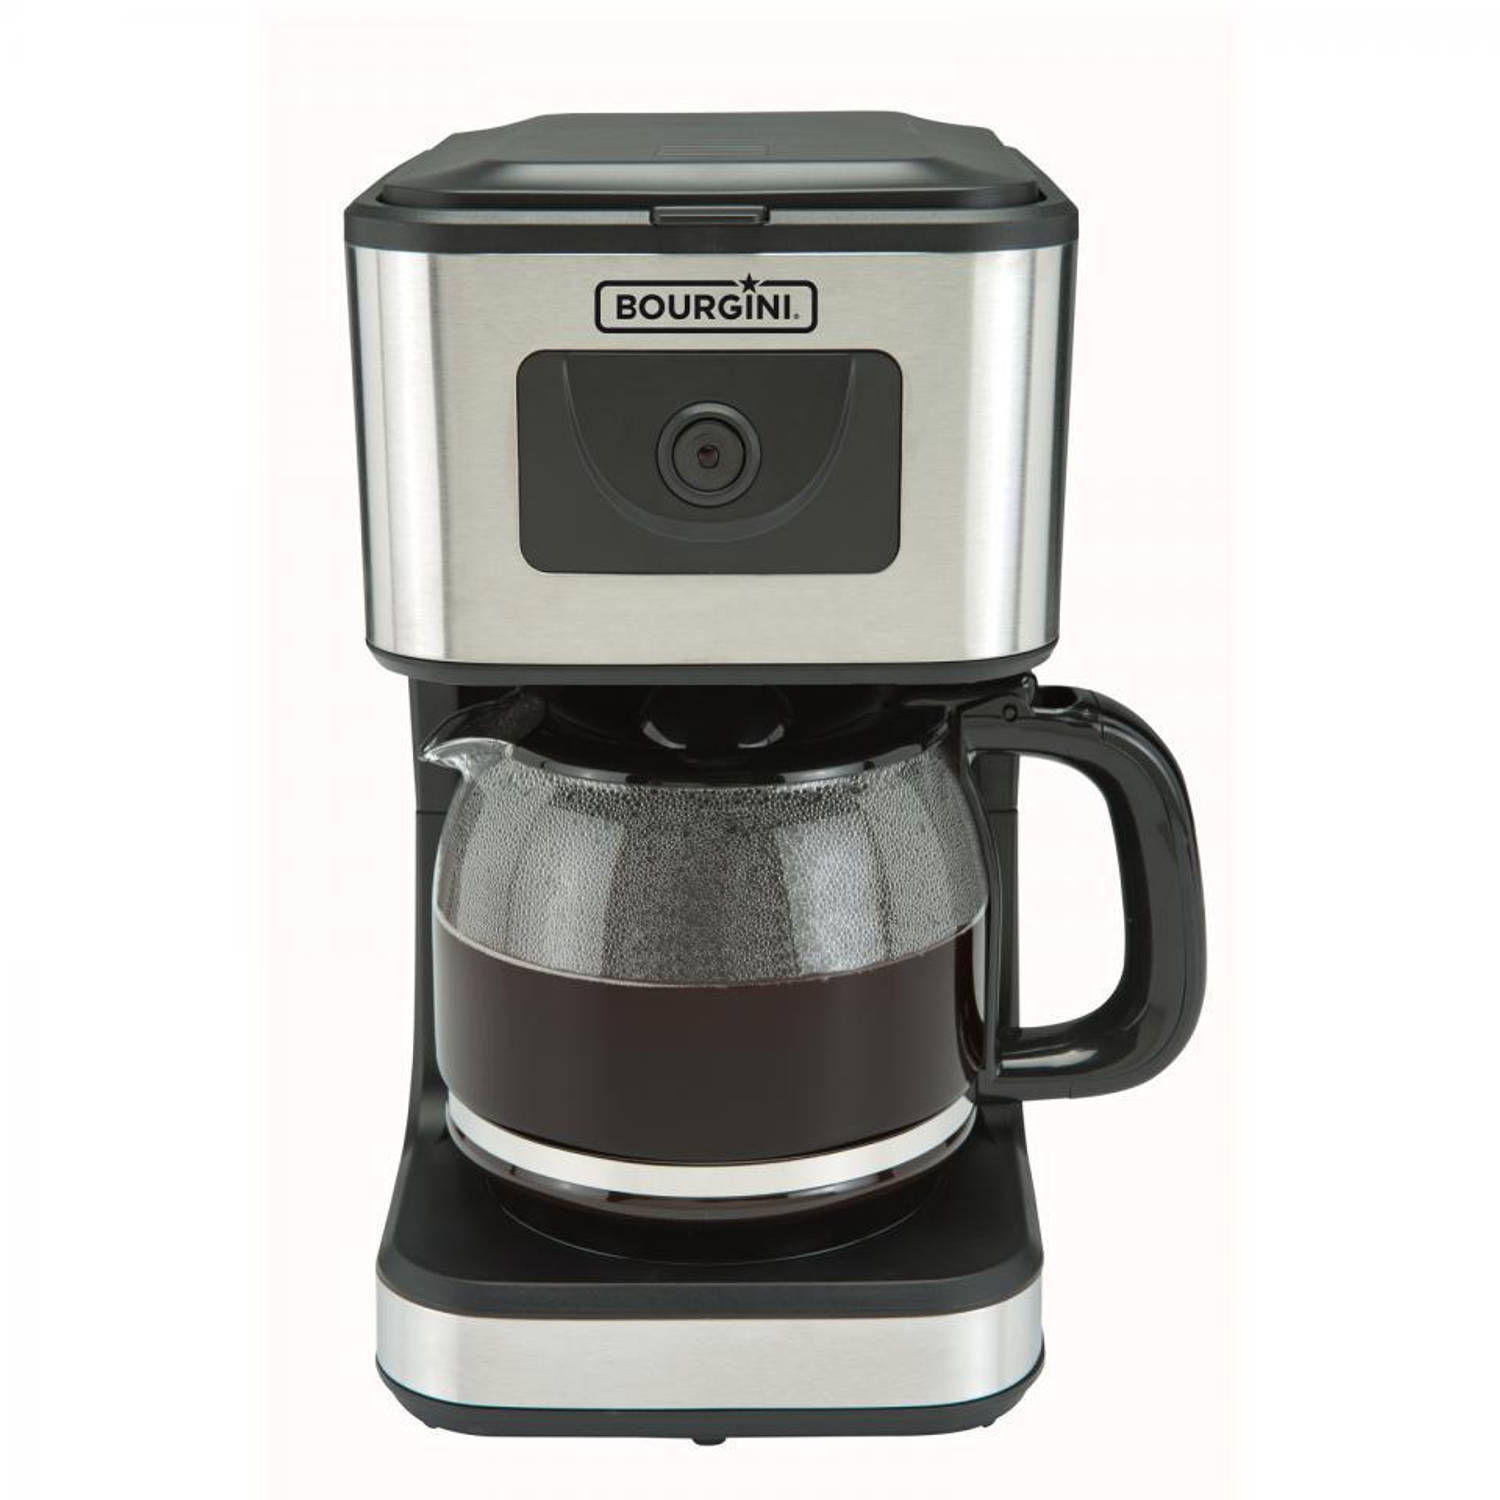 Bourgini Classic Coffee Maker 24.2020.00.00 - 1.5L